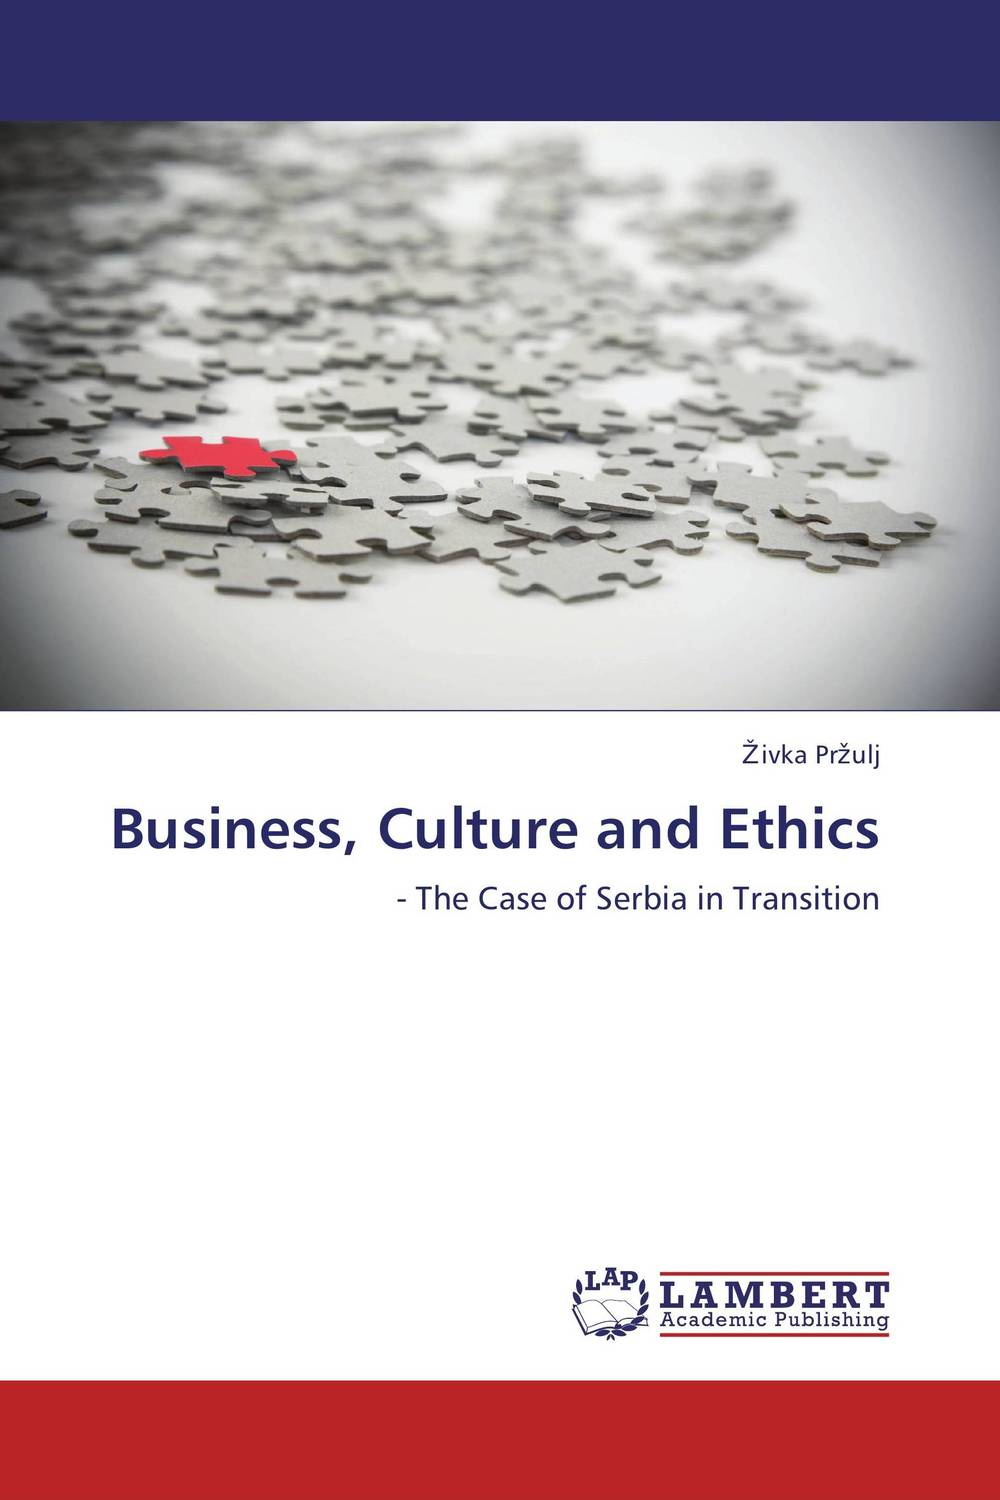 Business, Culture and Ethics the application of global ethics to solve local improprieties